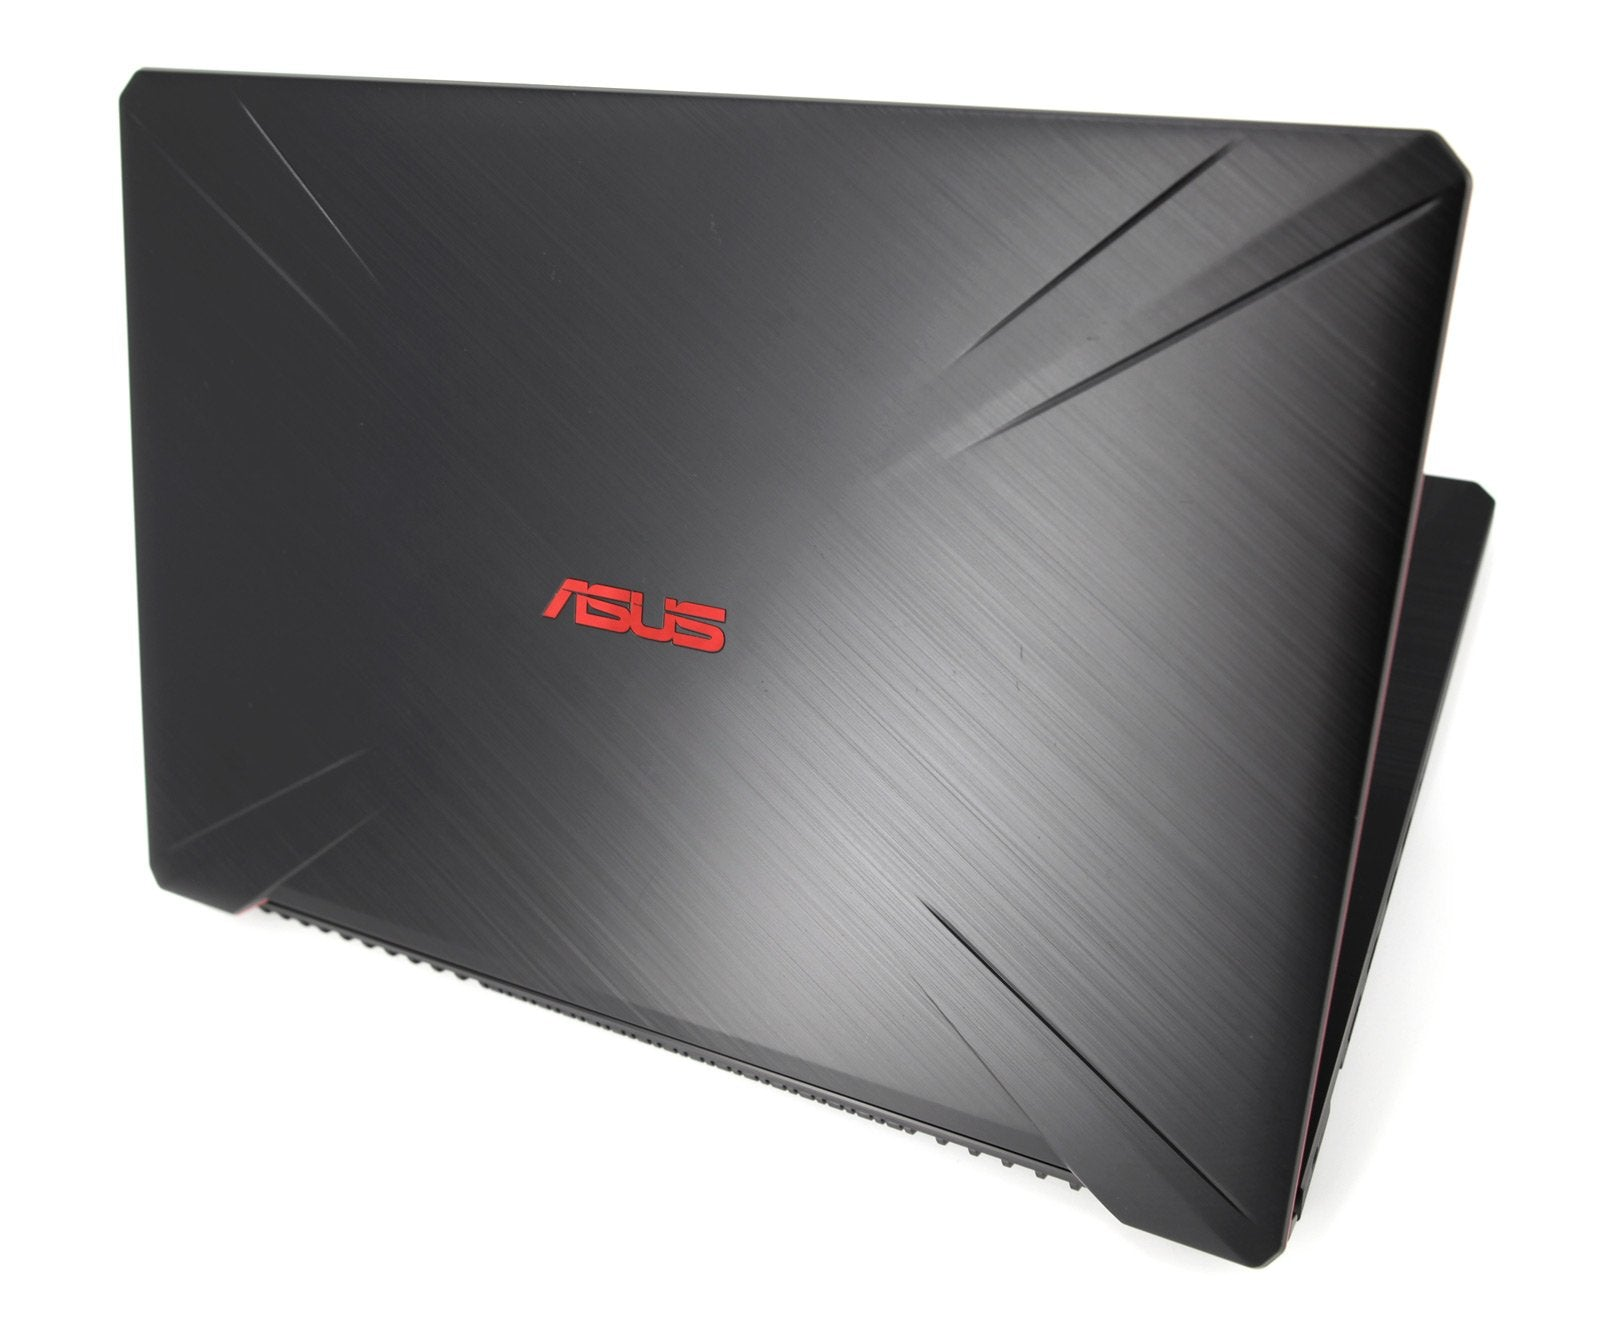 ASUS FX705GD IPS Gaming Laptop: GTX 1050, I5-8300H, 256GB+1TB, 8GB RAM - CruiseTech